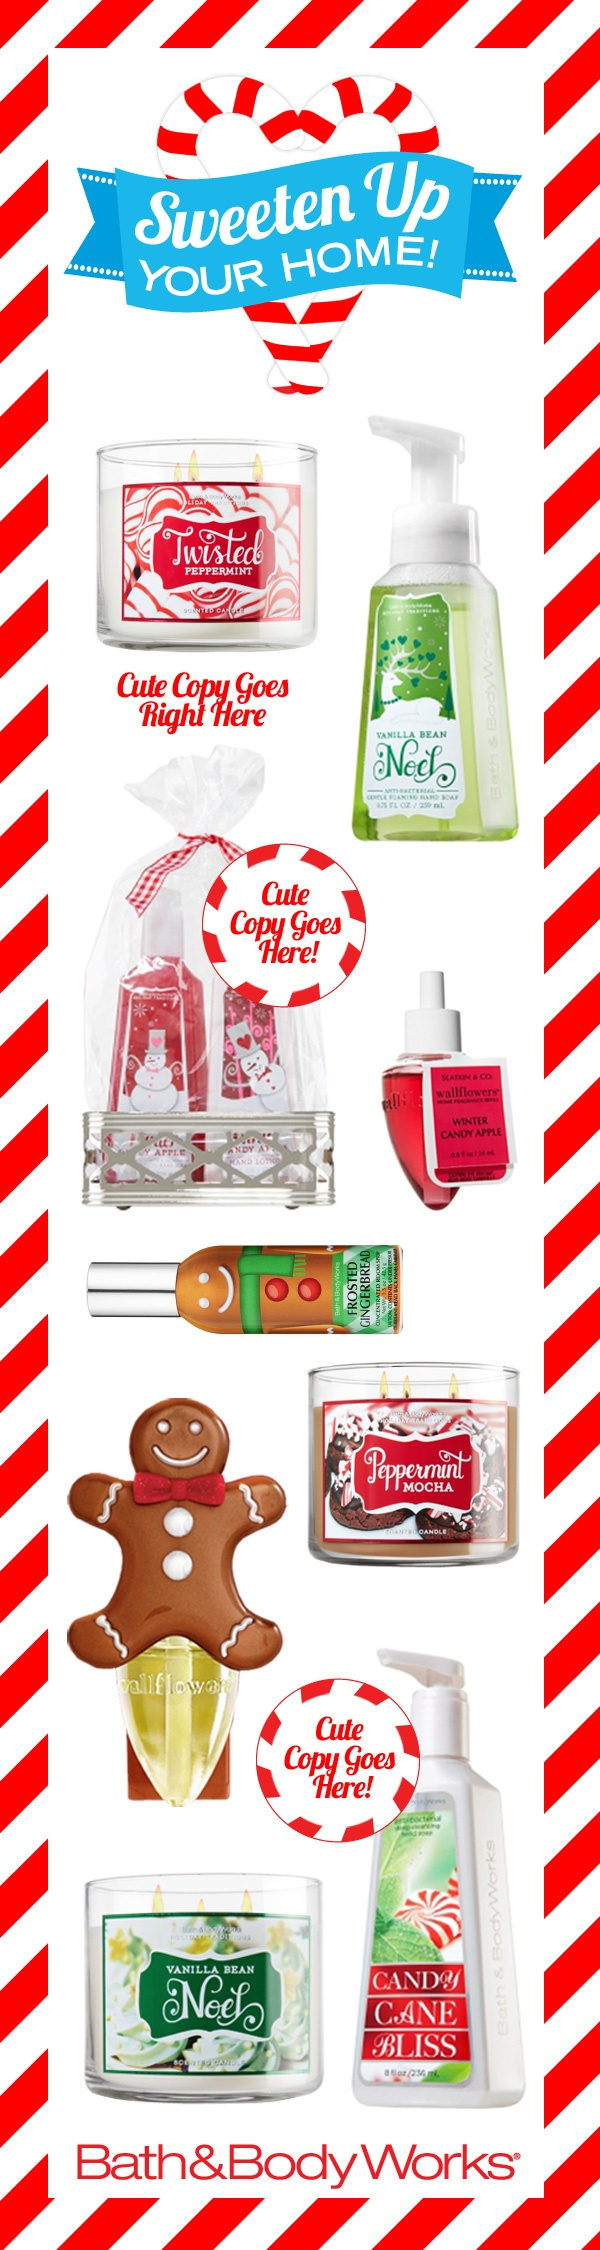 Bath and body works holiday scents - 182 Best Bath And Body Works Images On Pinterest Bath Body Works Bath N Body Works And Make Up